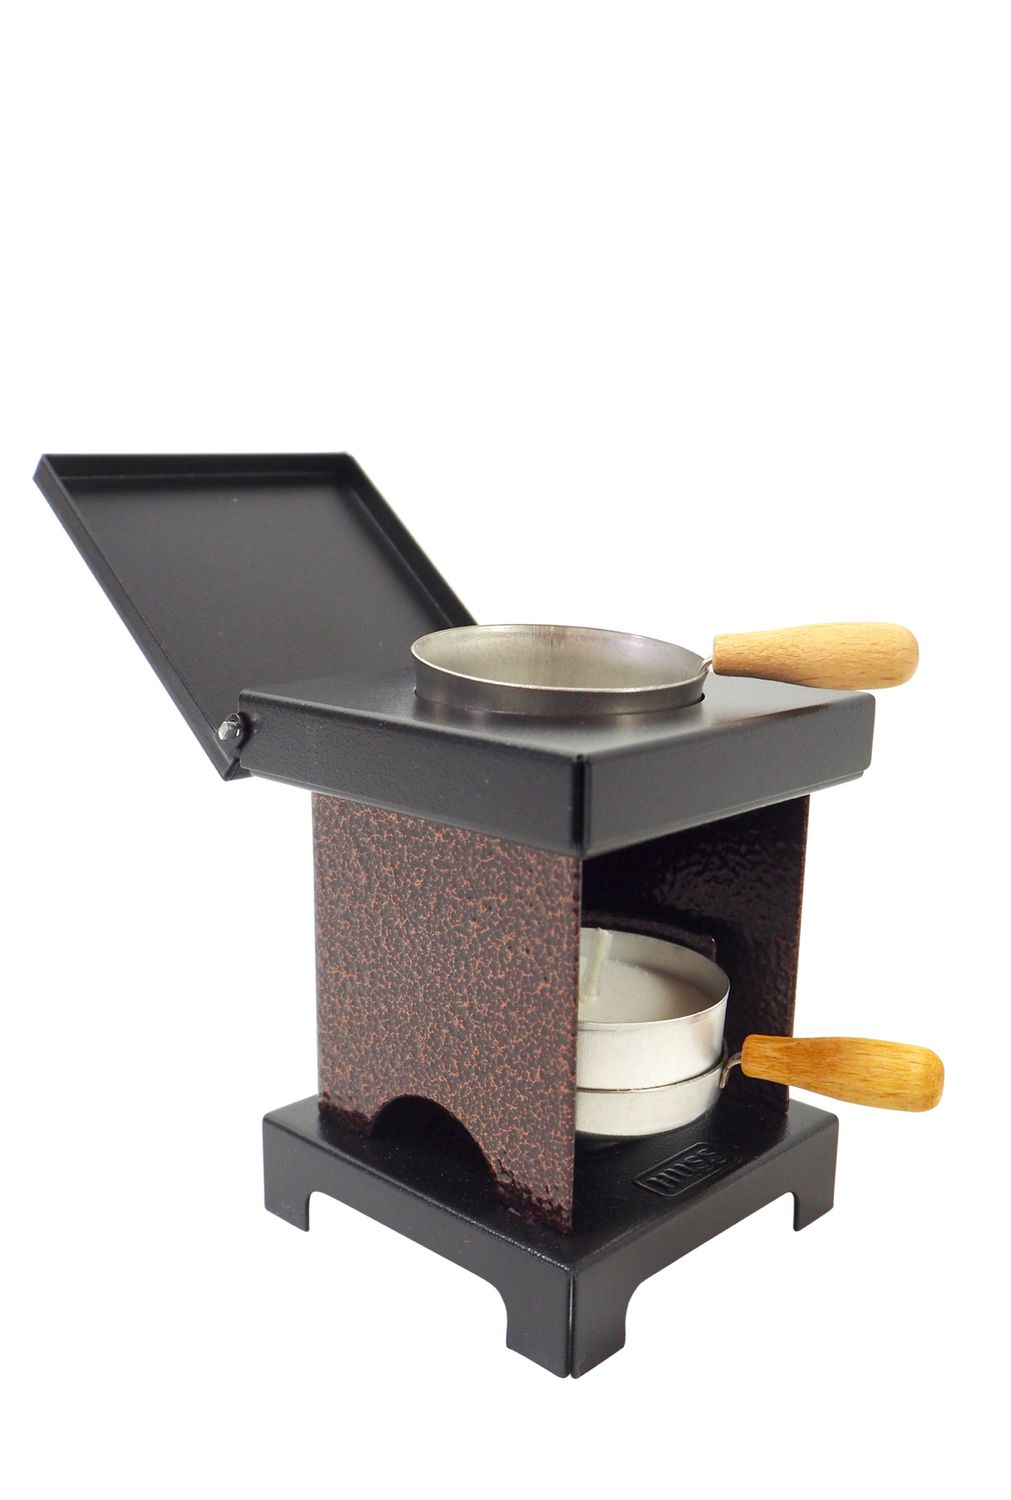 Huss  Neudorfer Stool Stove, Incense & Resin stove ❁ copper